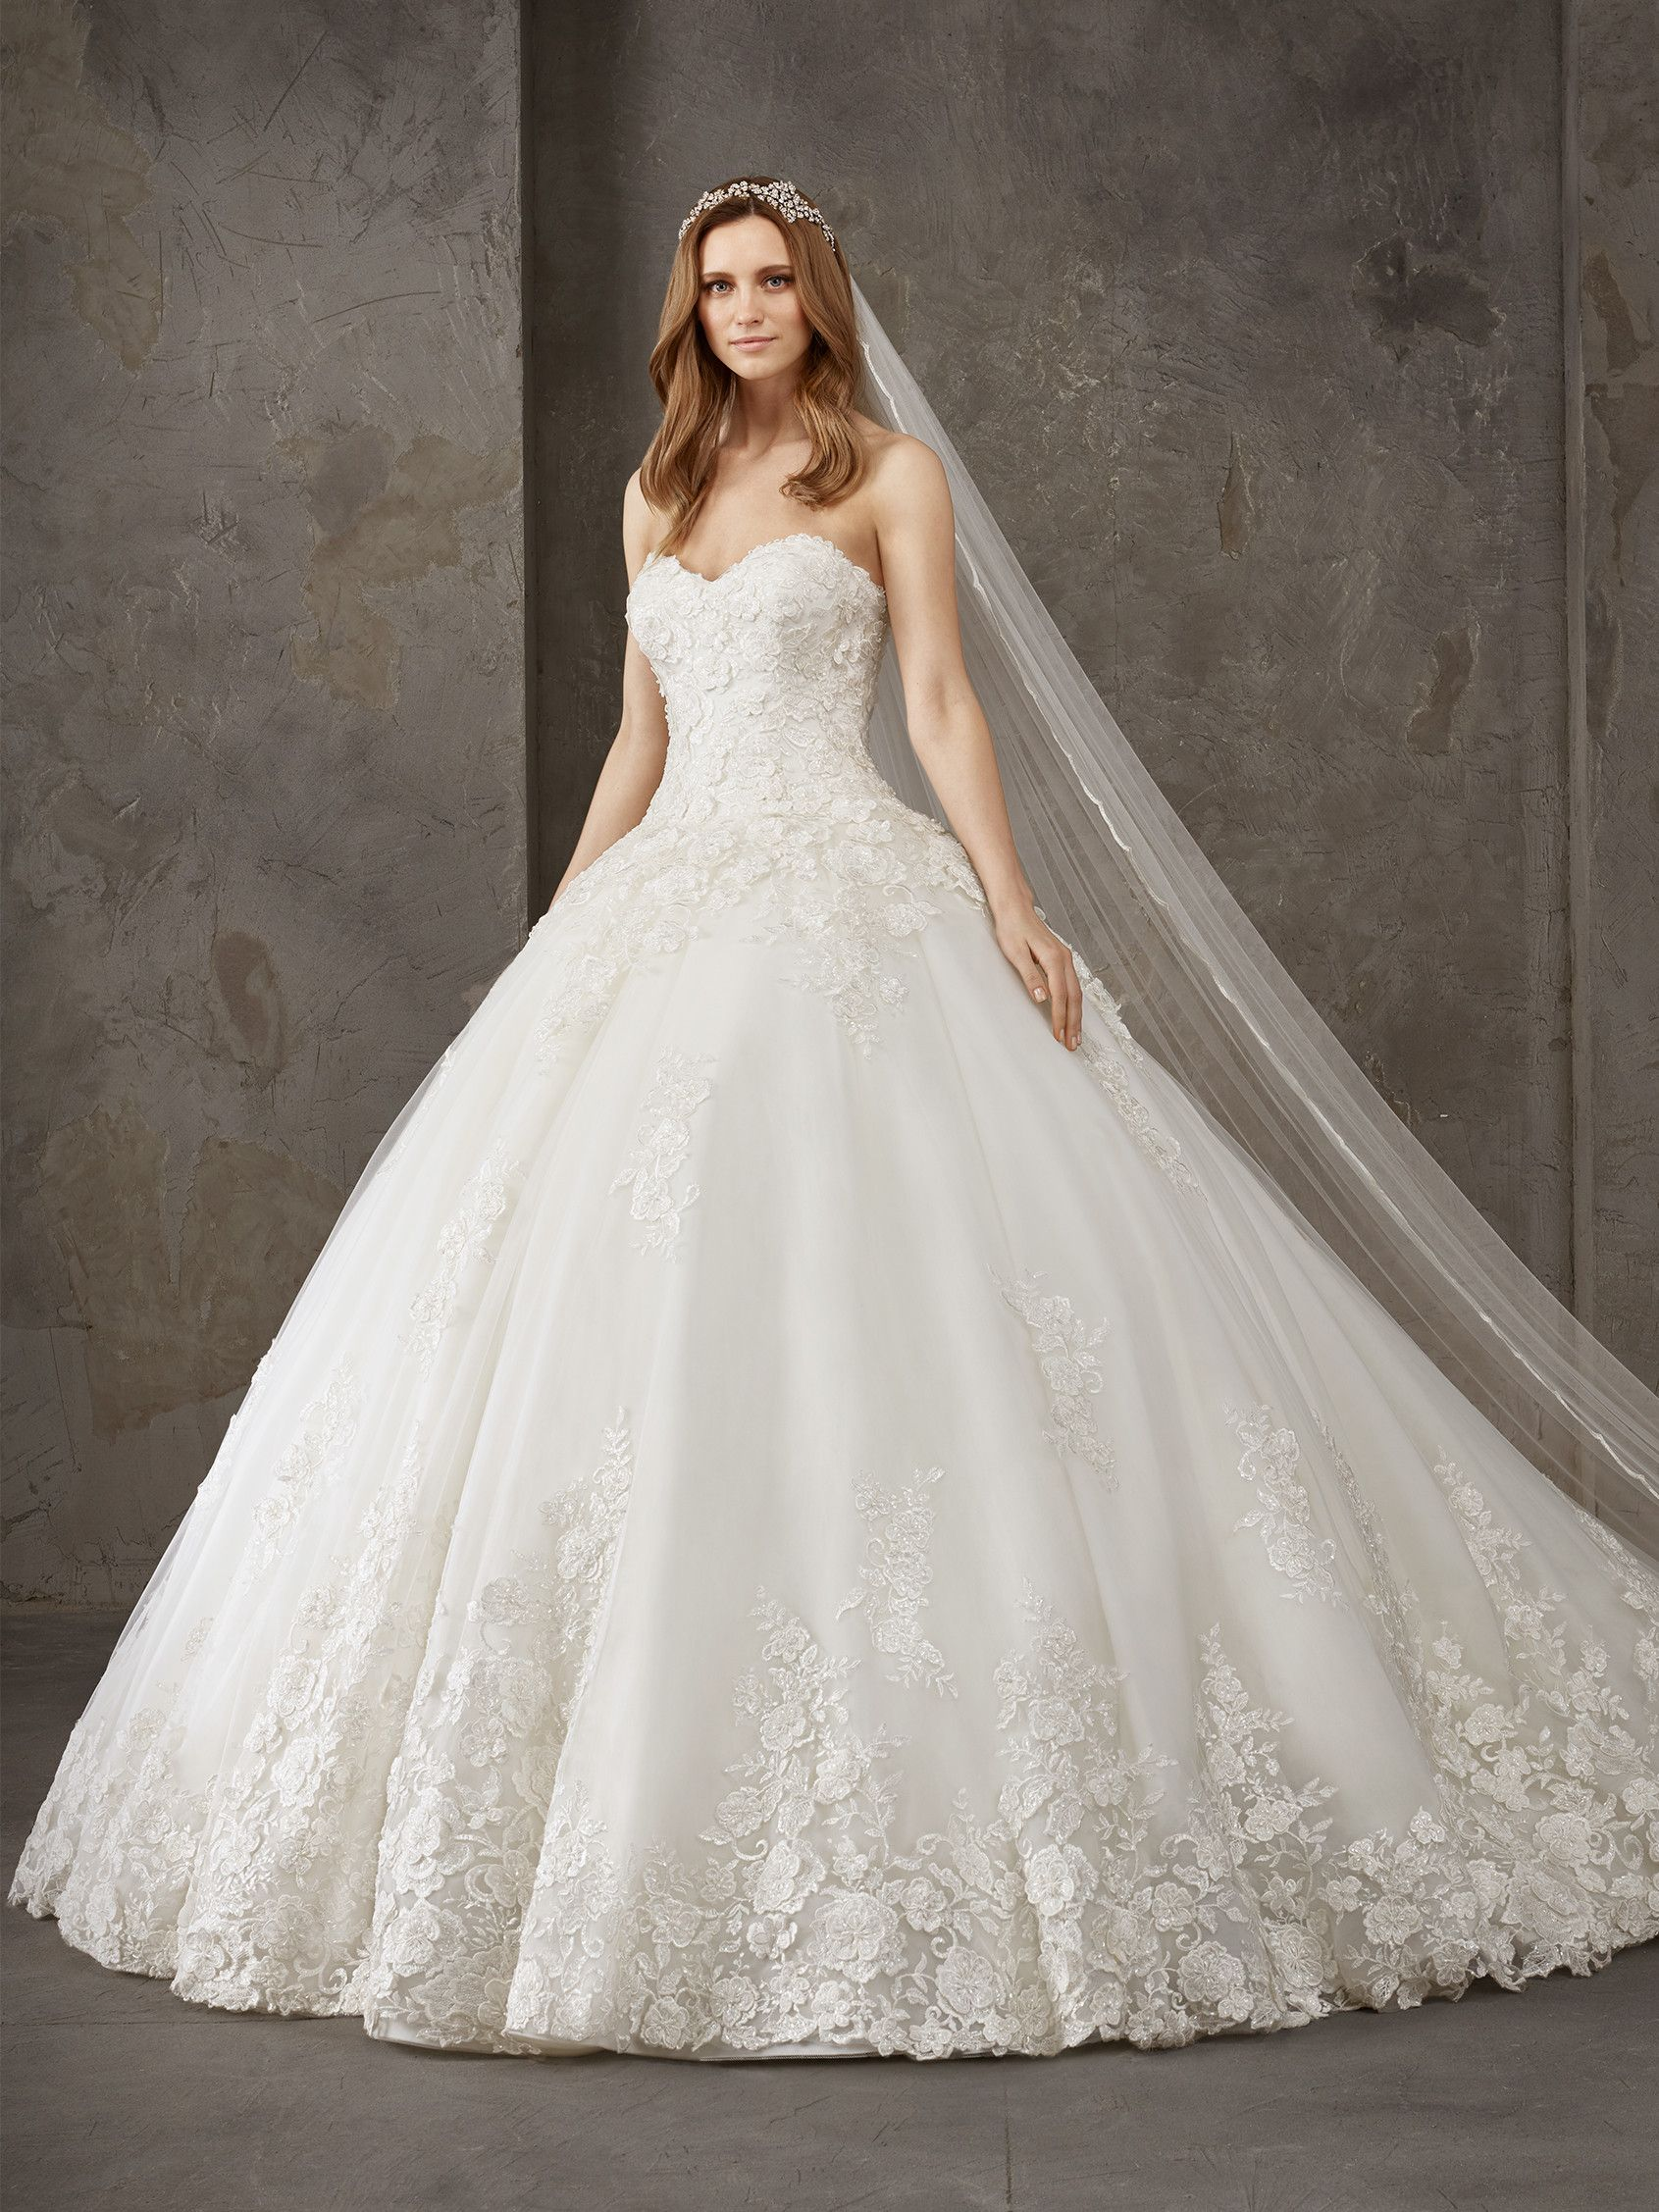 3174a2f50930d Nil is a wonderful princess wedding dress with a lot of volume that  contrasts with an elegant and sensual sweetheart neckline.   Pronovias